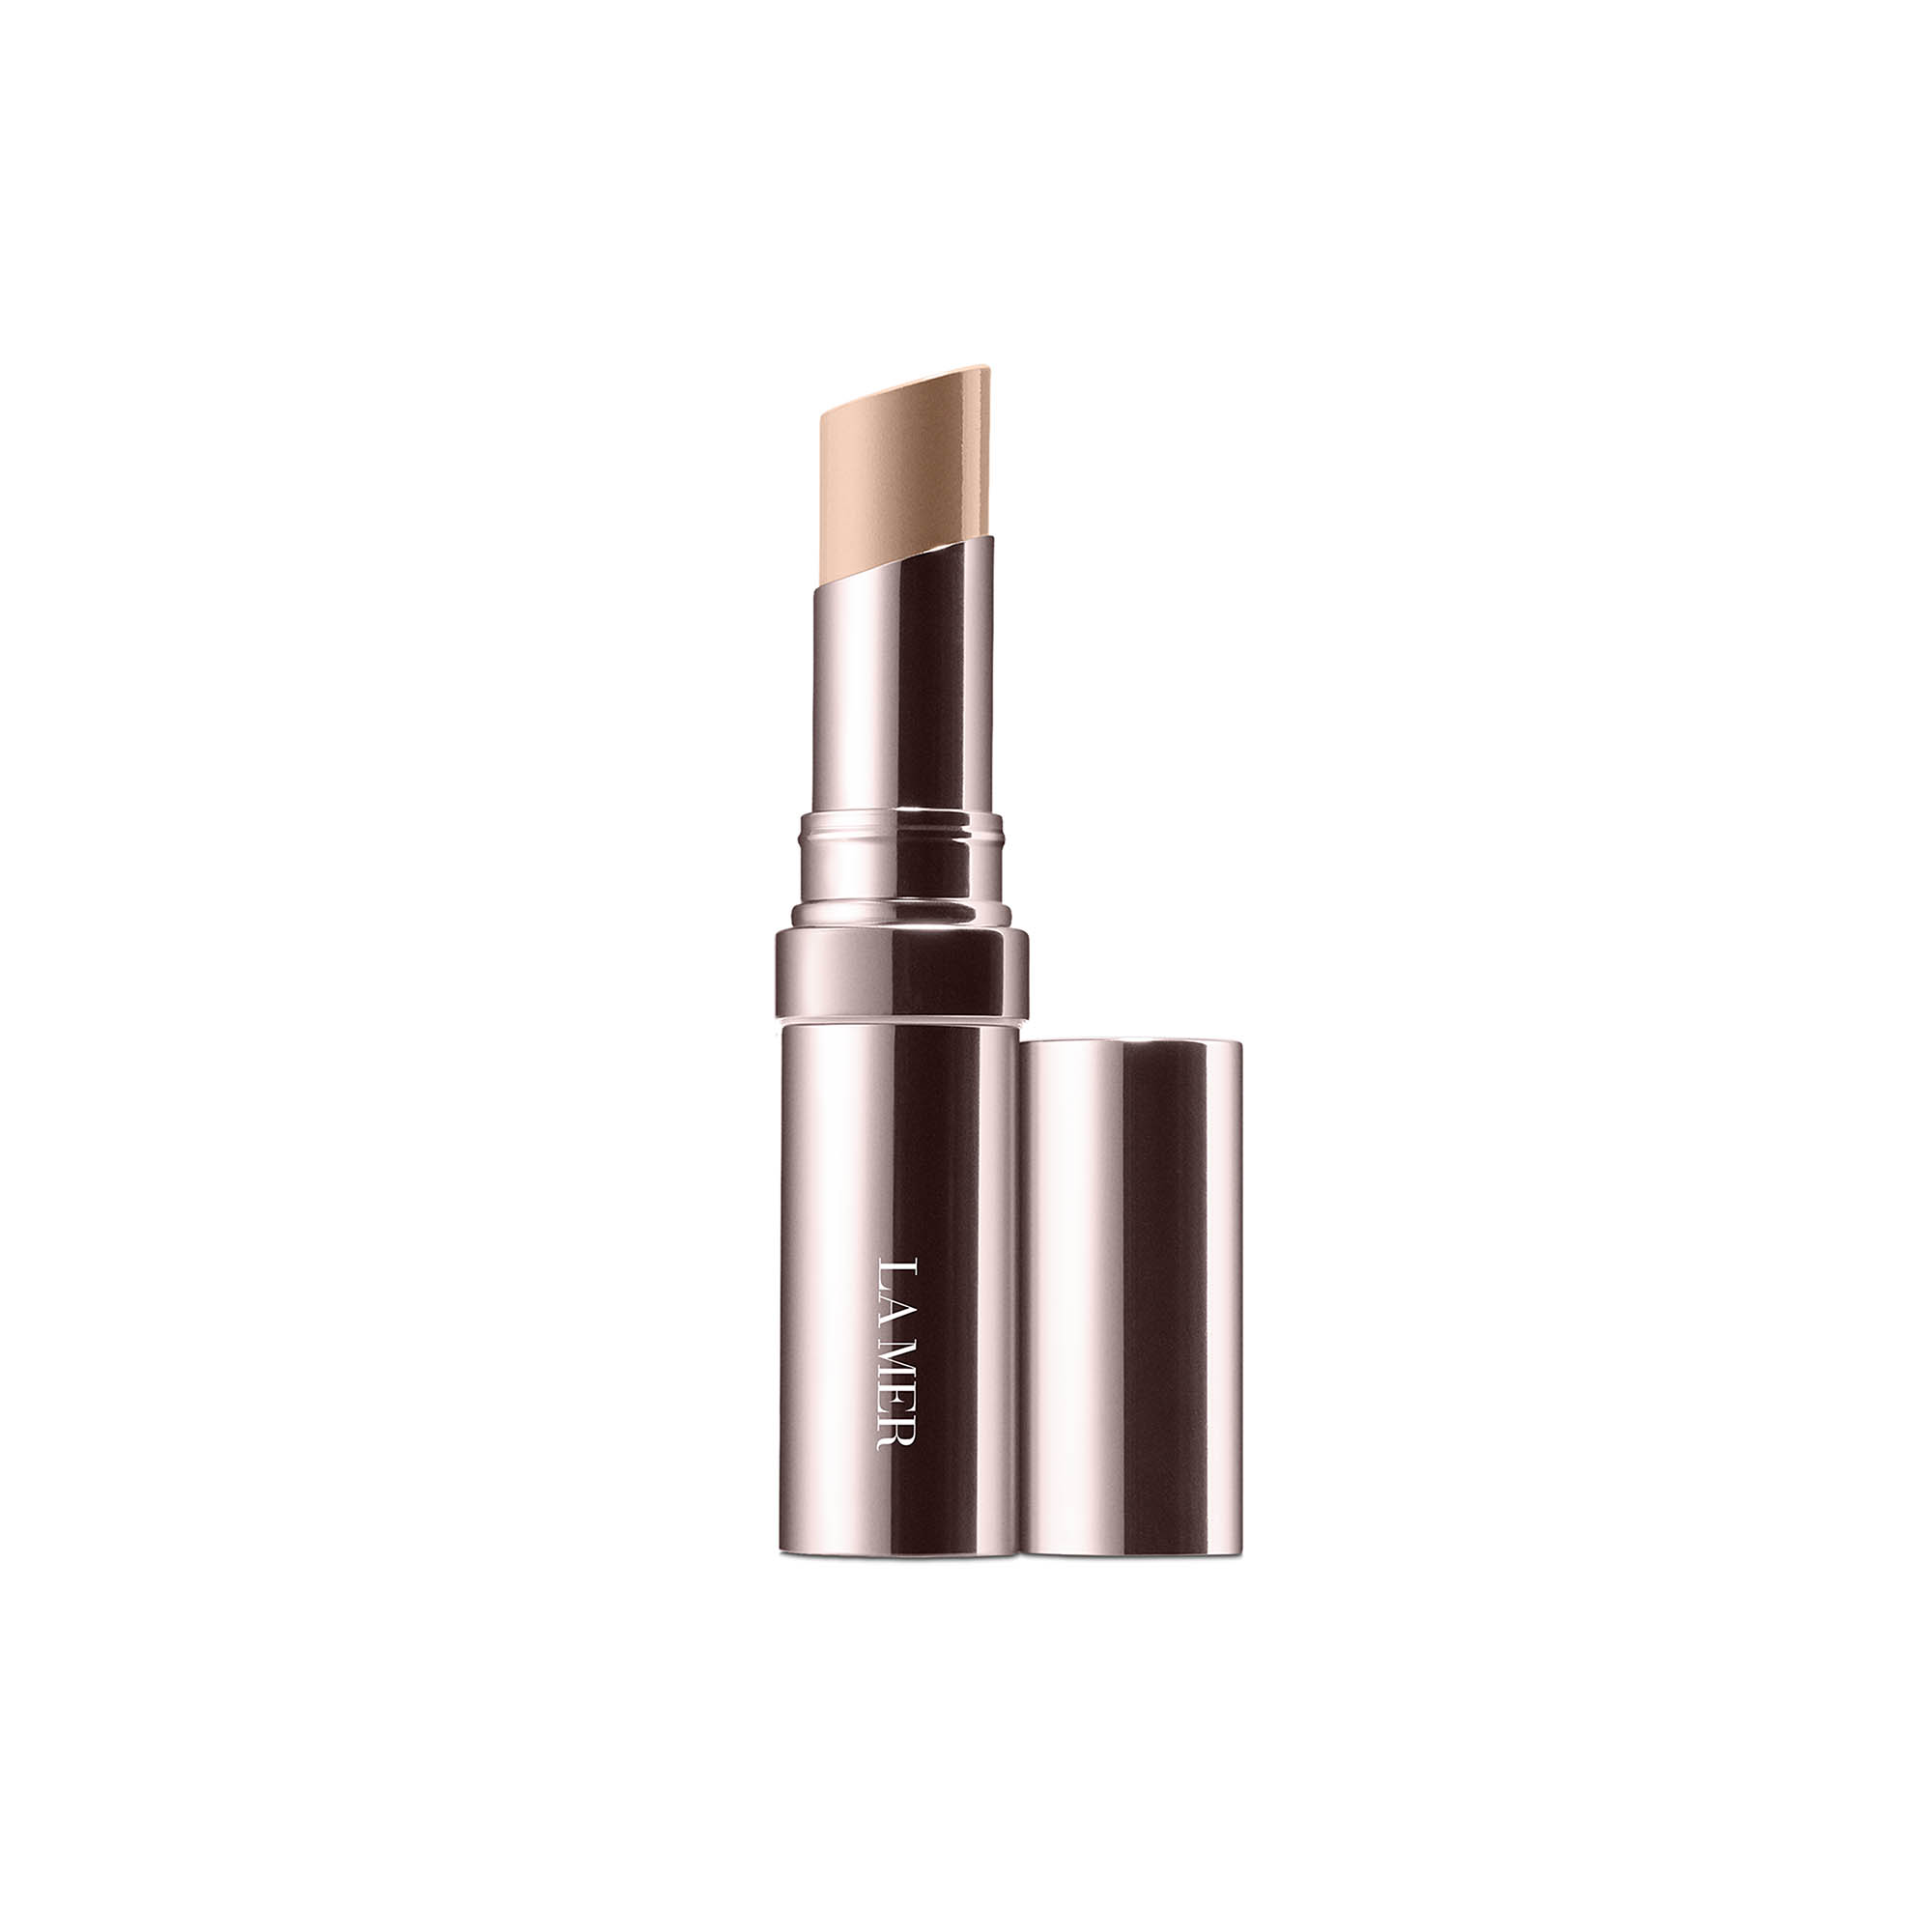 The Concealer Concealer 12 Light